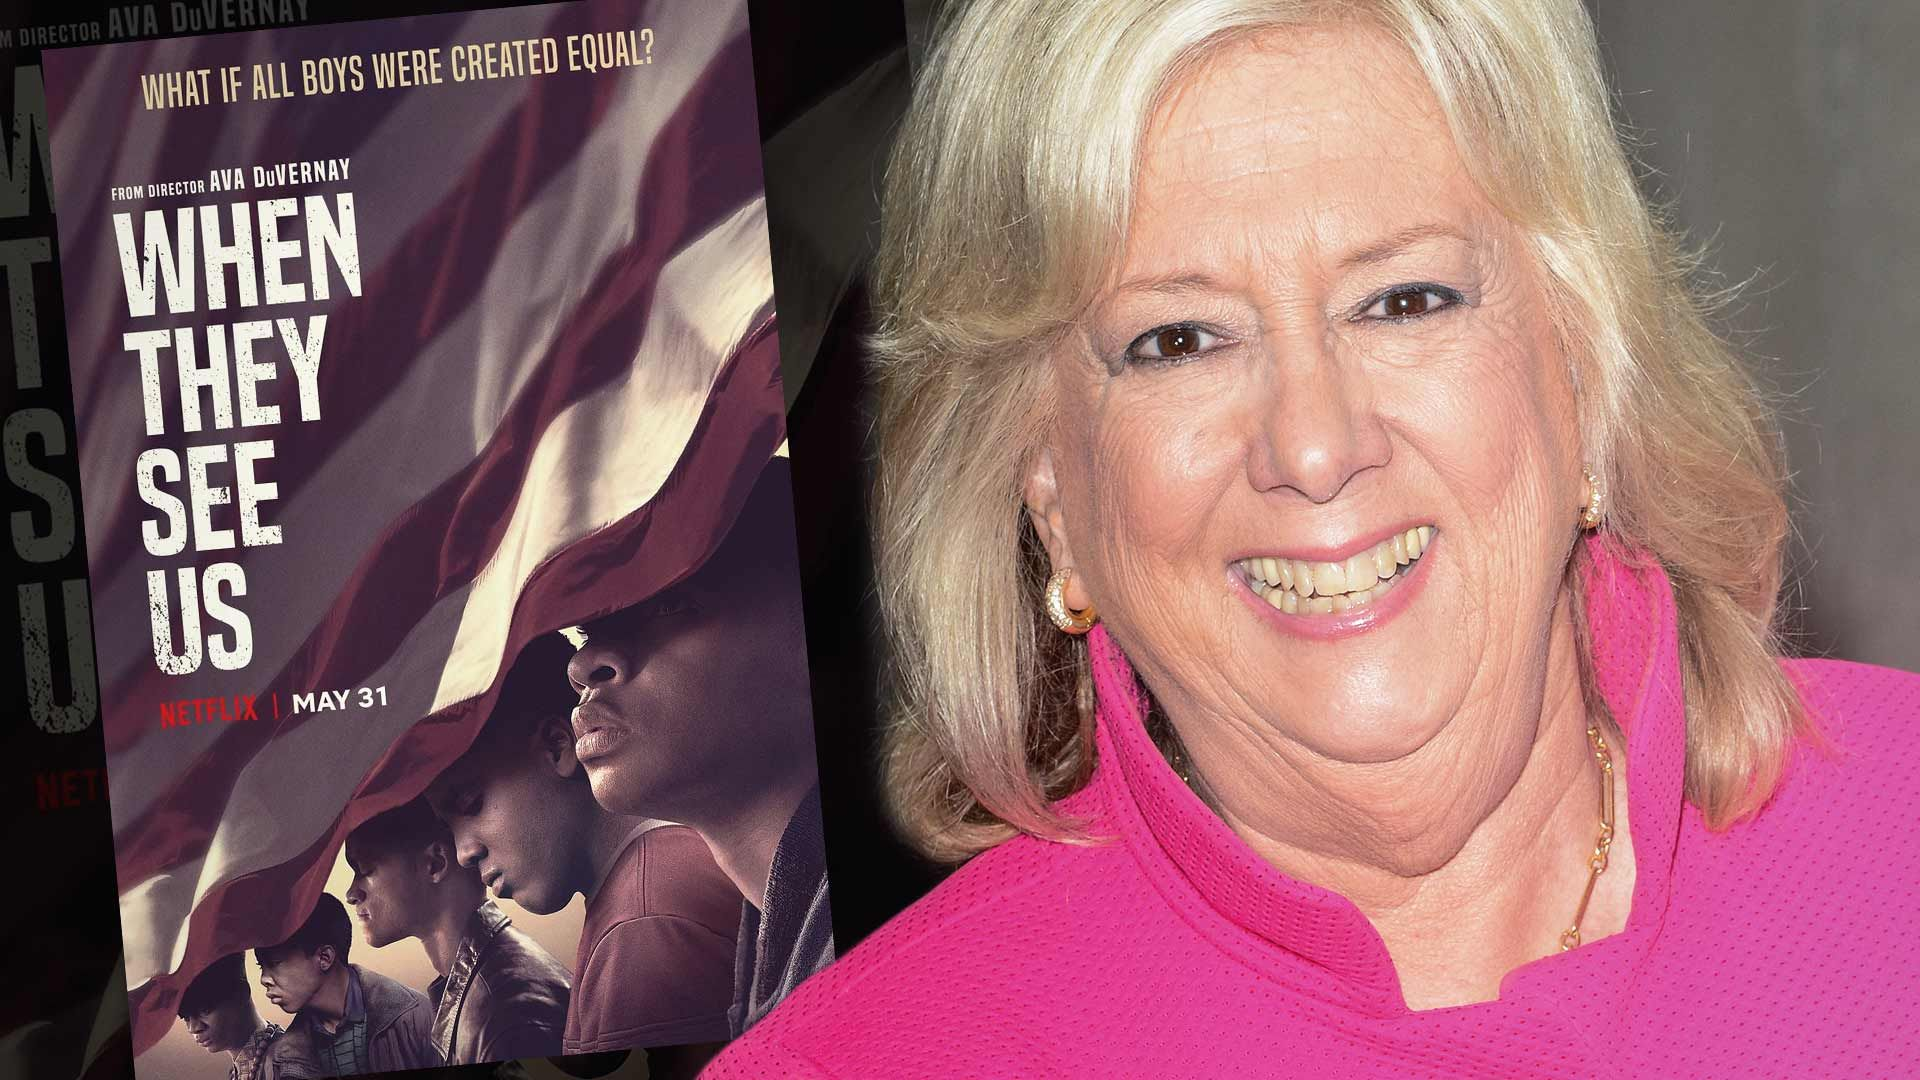 Linda Fairstein Says She Was Defamed in 'When They See Us'